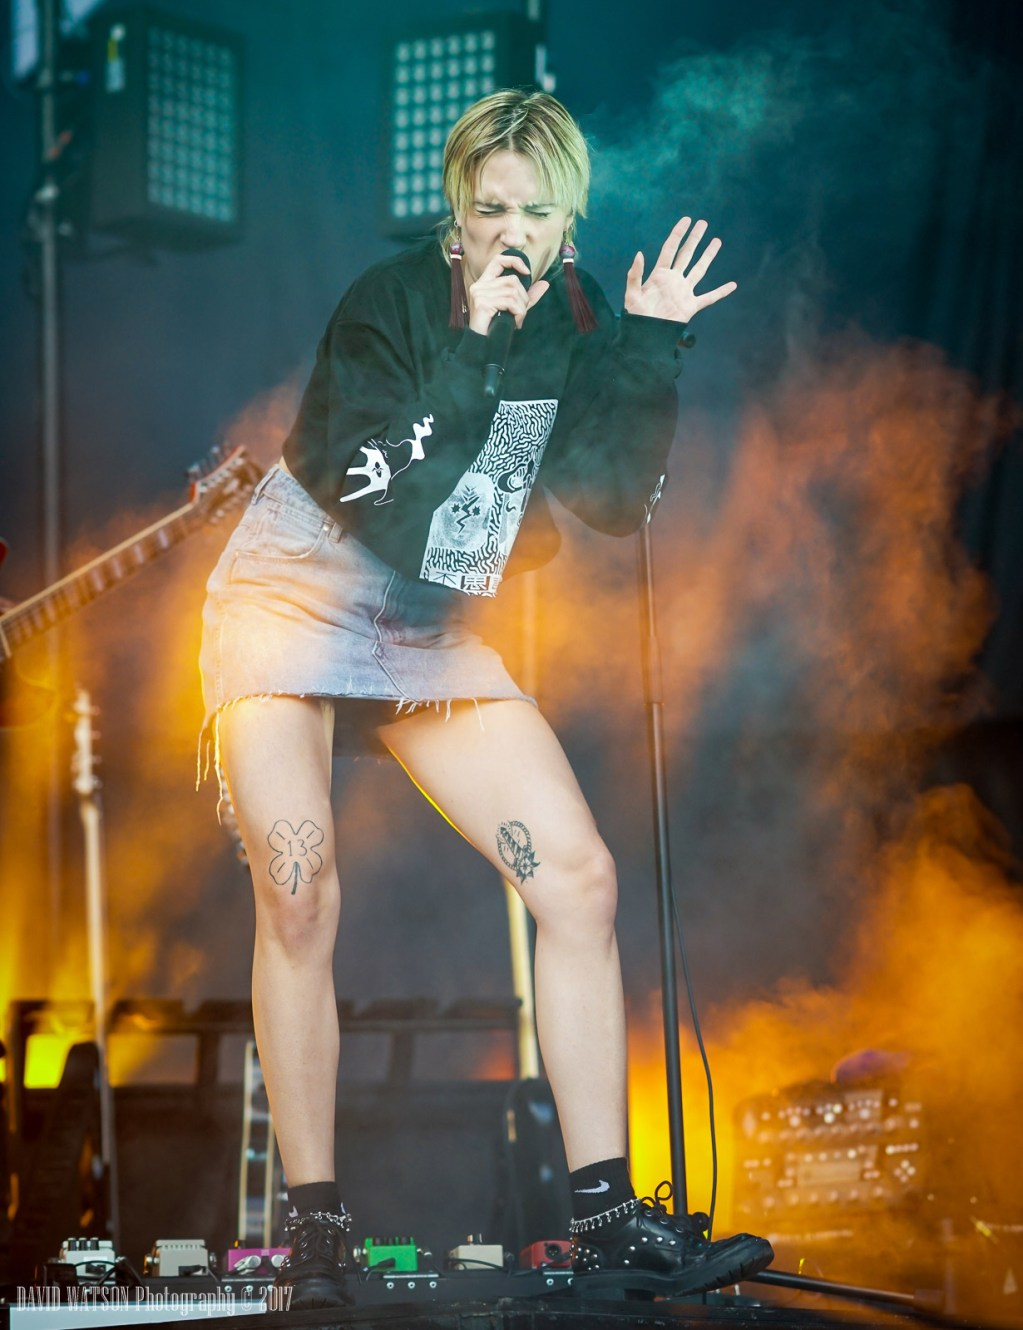 MØ performing live in Auckland, New Zealand, 2017. Image By David Watson.